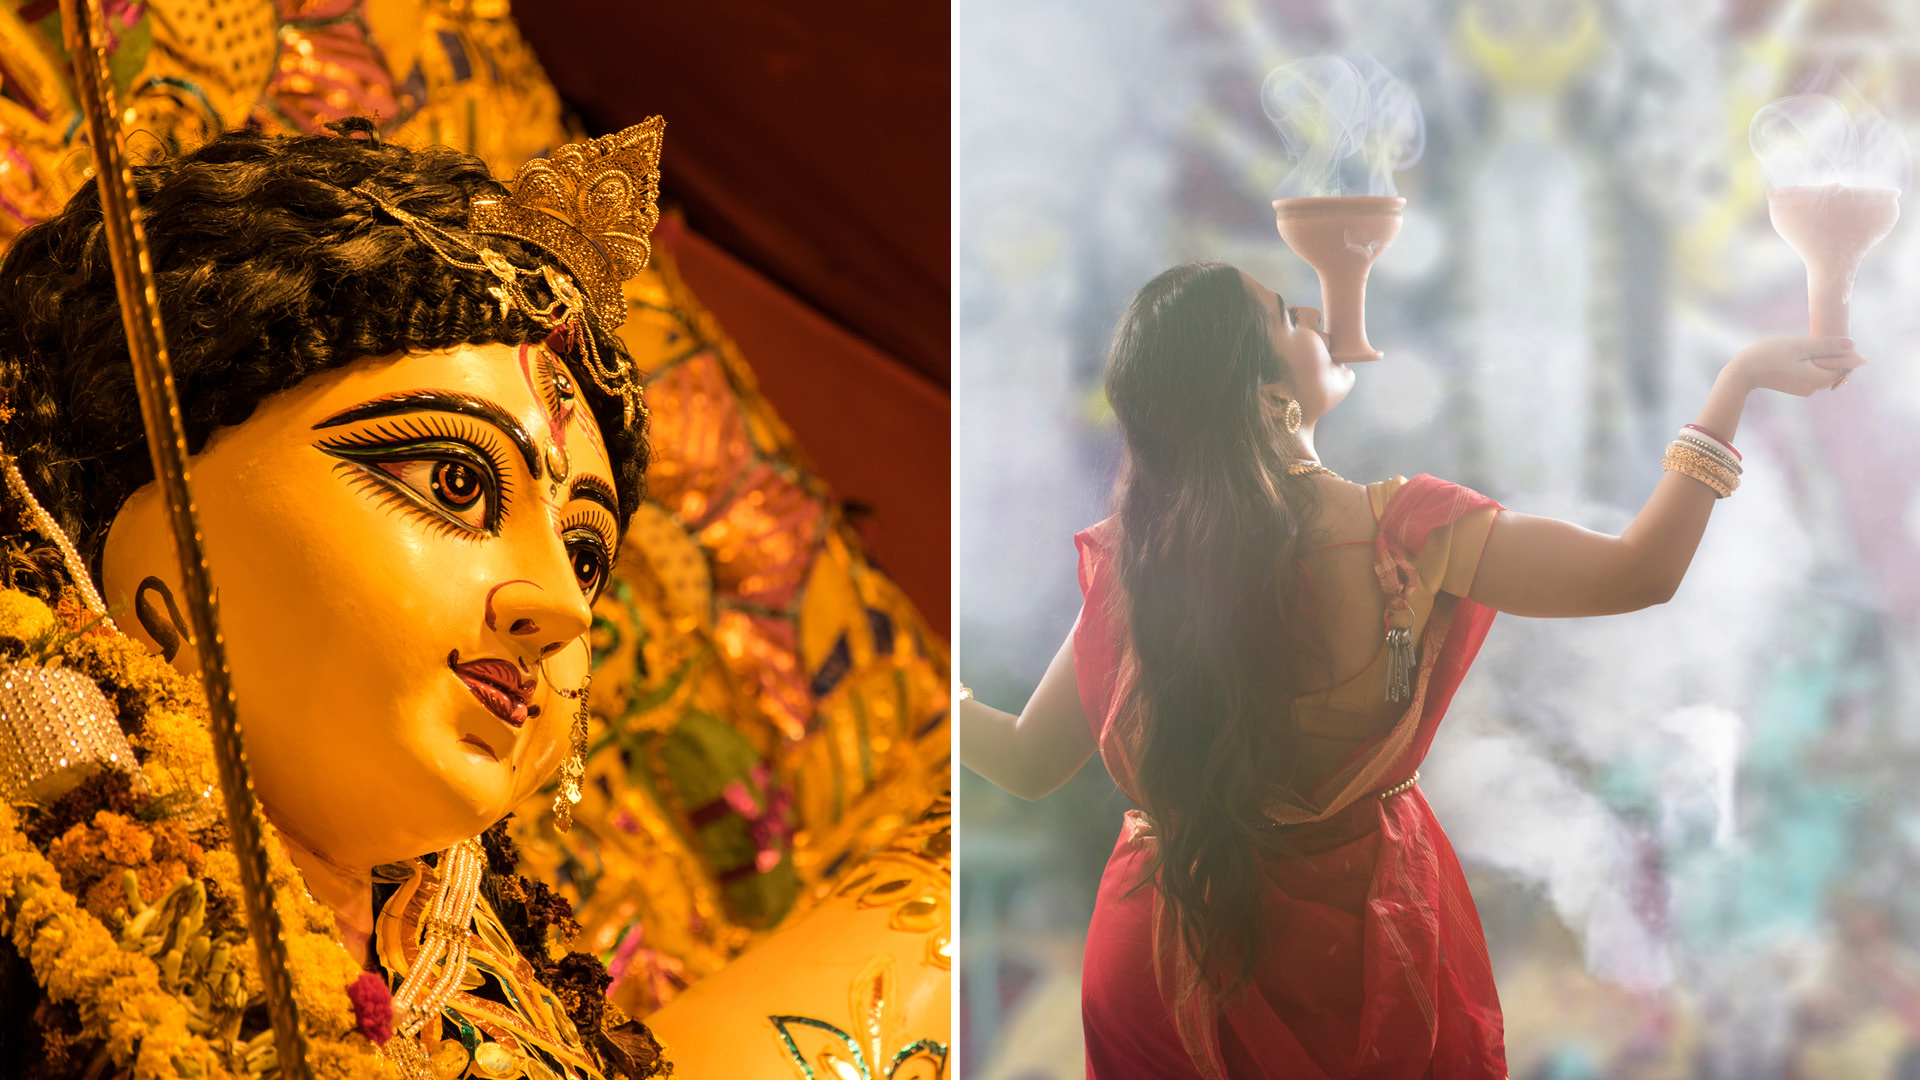 Kolkata S Durga Puja Gets Nominated For The Unesco Heritage List